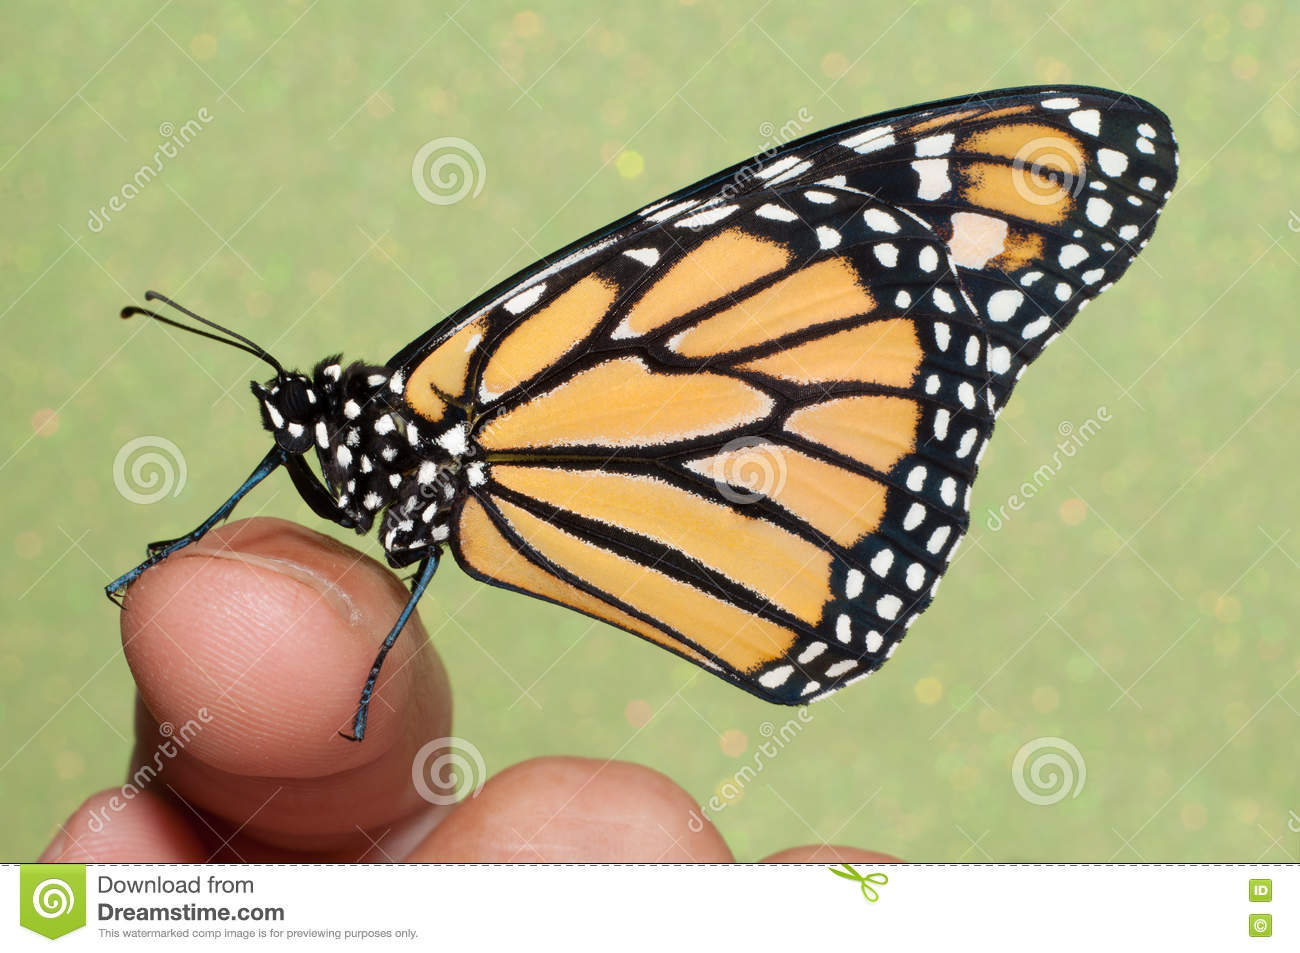 b5ea3f0f2 Monarch Butterfly Resting On A Finger Stock Photo - Image of ...